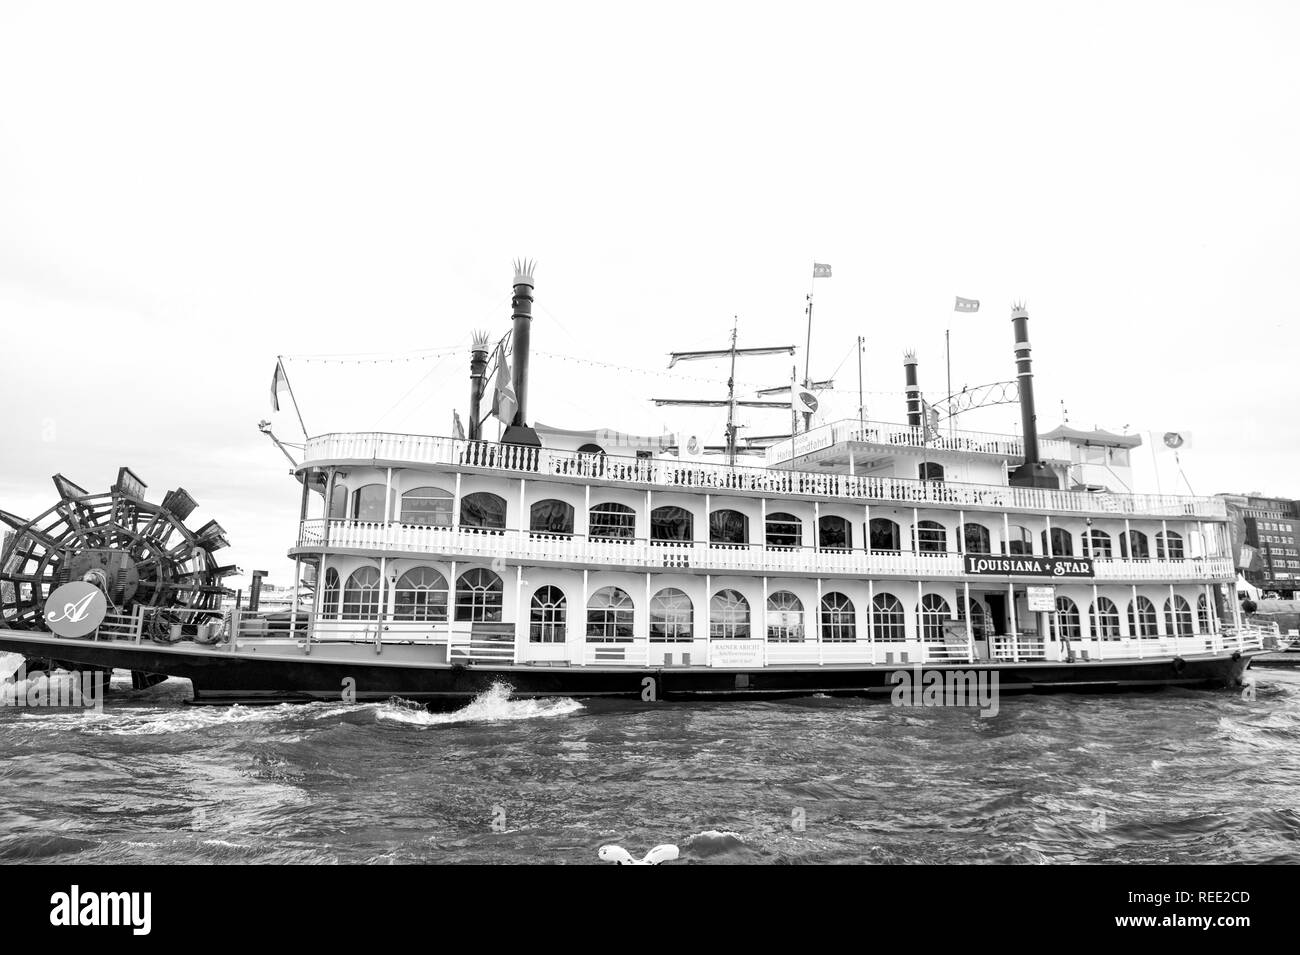 Hamburg, Germany - September 07, 2017: old ship float on water in city harbor. Retro vintage vessel transport, transportation. Travel, travelling trip. Vacation discovery wanderlust. - Stock Image